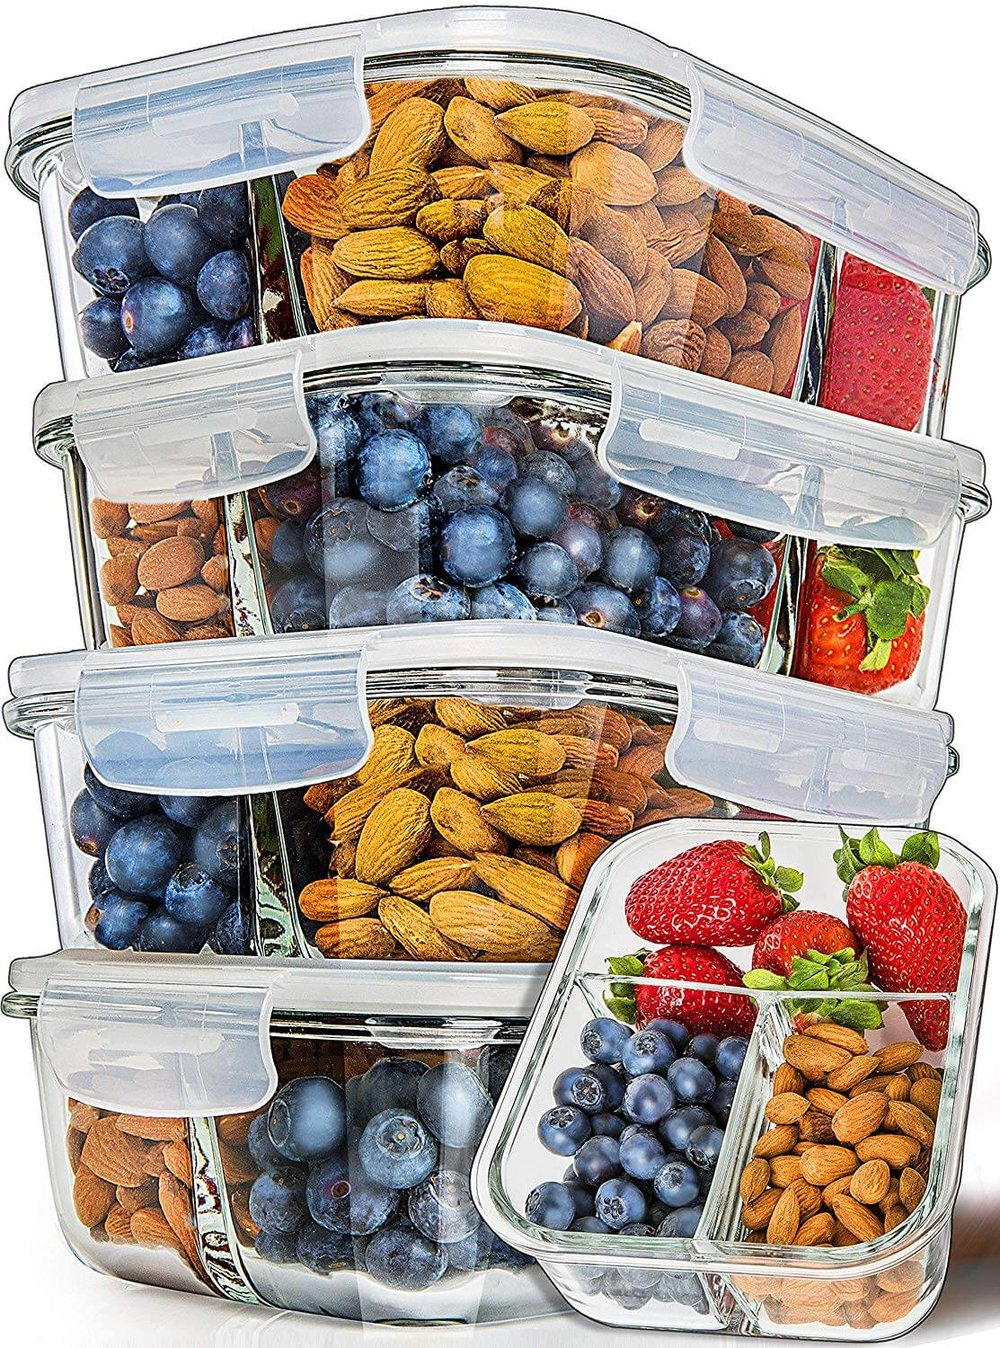 meal prep containers.jpg